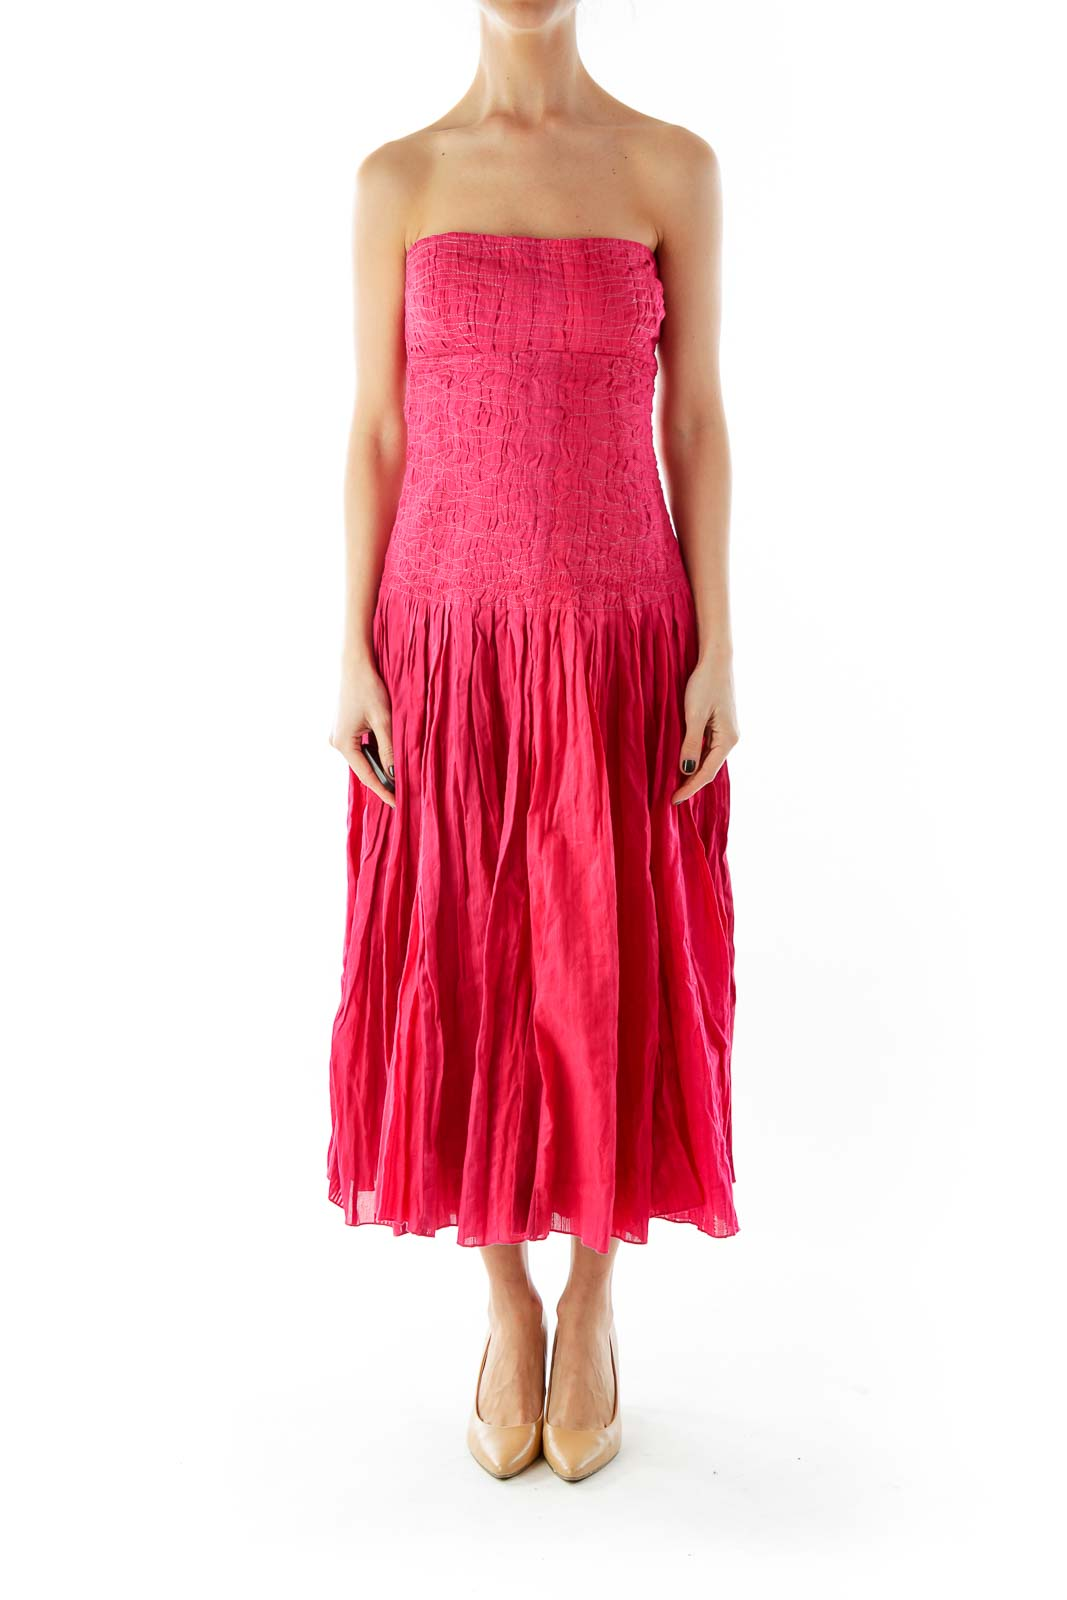 Red Strapless Textured Cocktail Dress